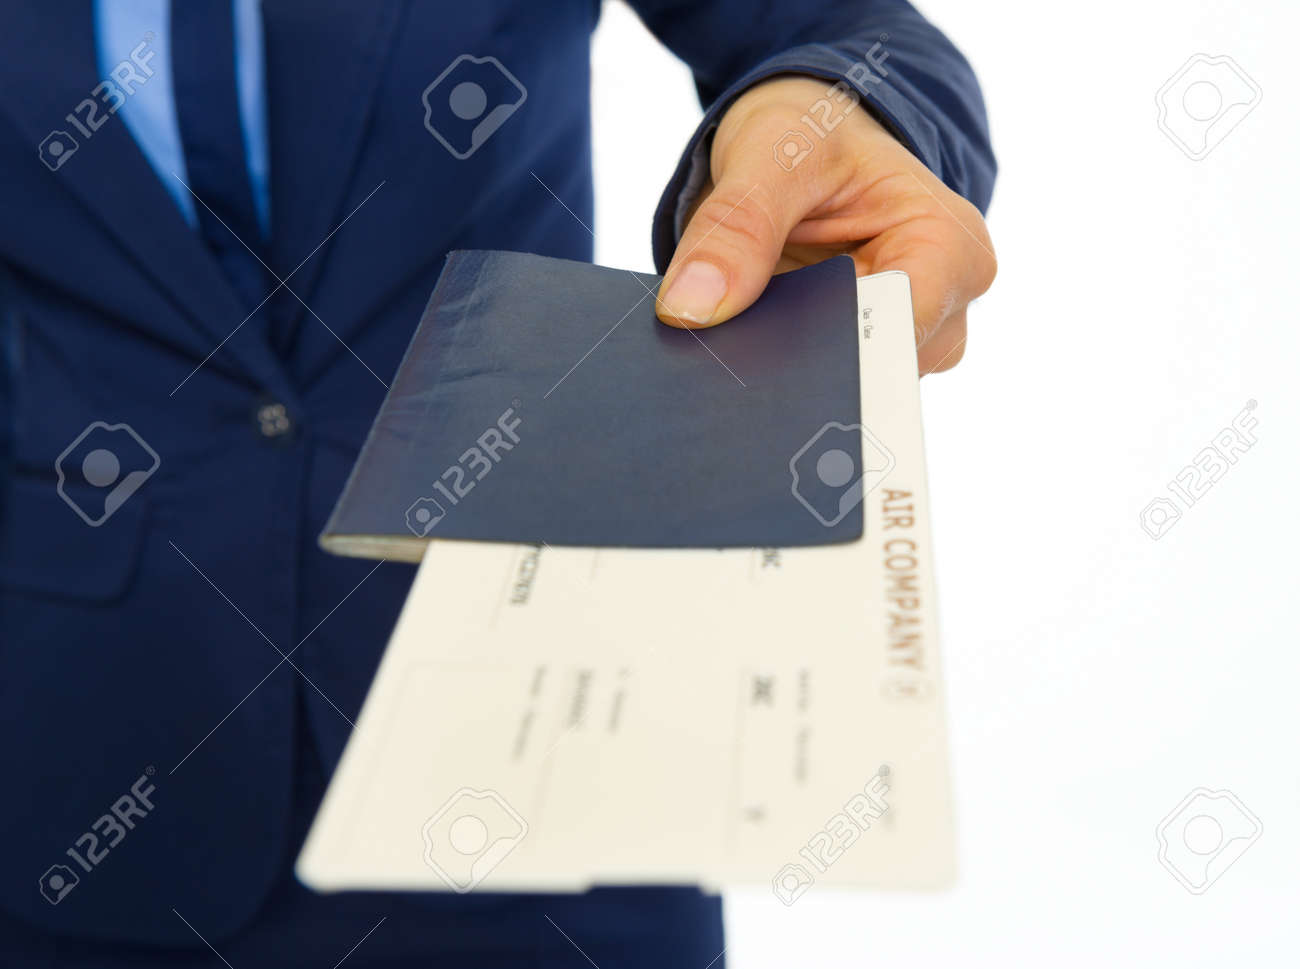 Closeup on business woman giving passport with ticket Stock Photo - 30683844